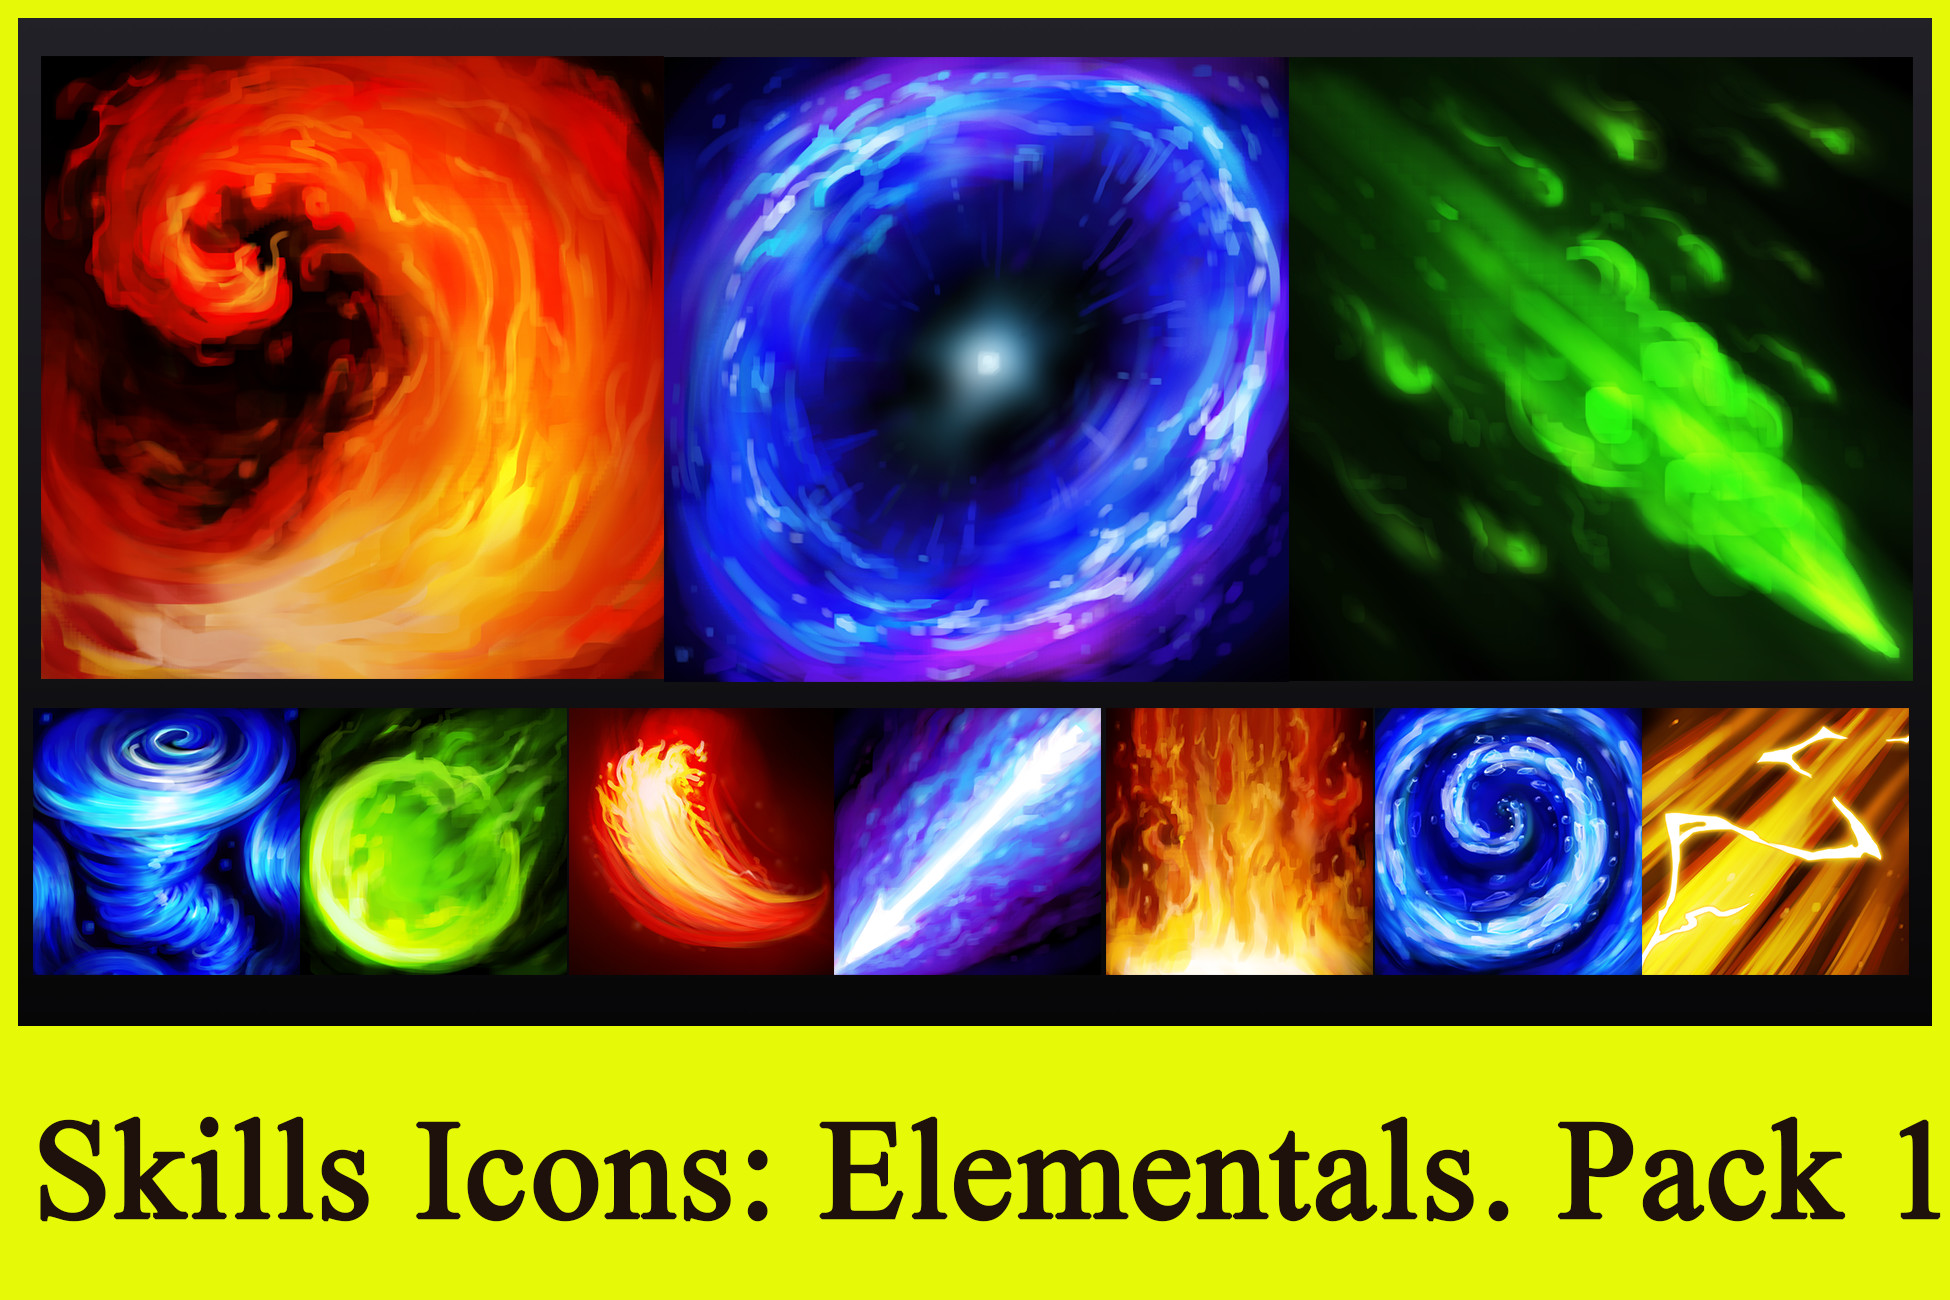 Skills Icons: Elementals. Pack 1